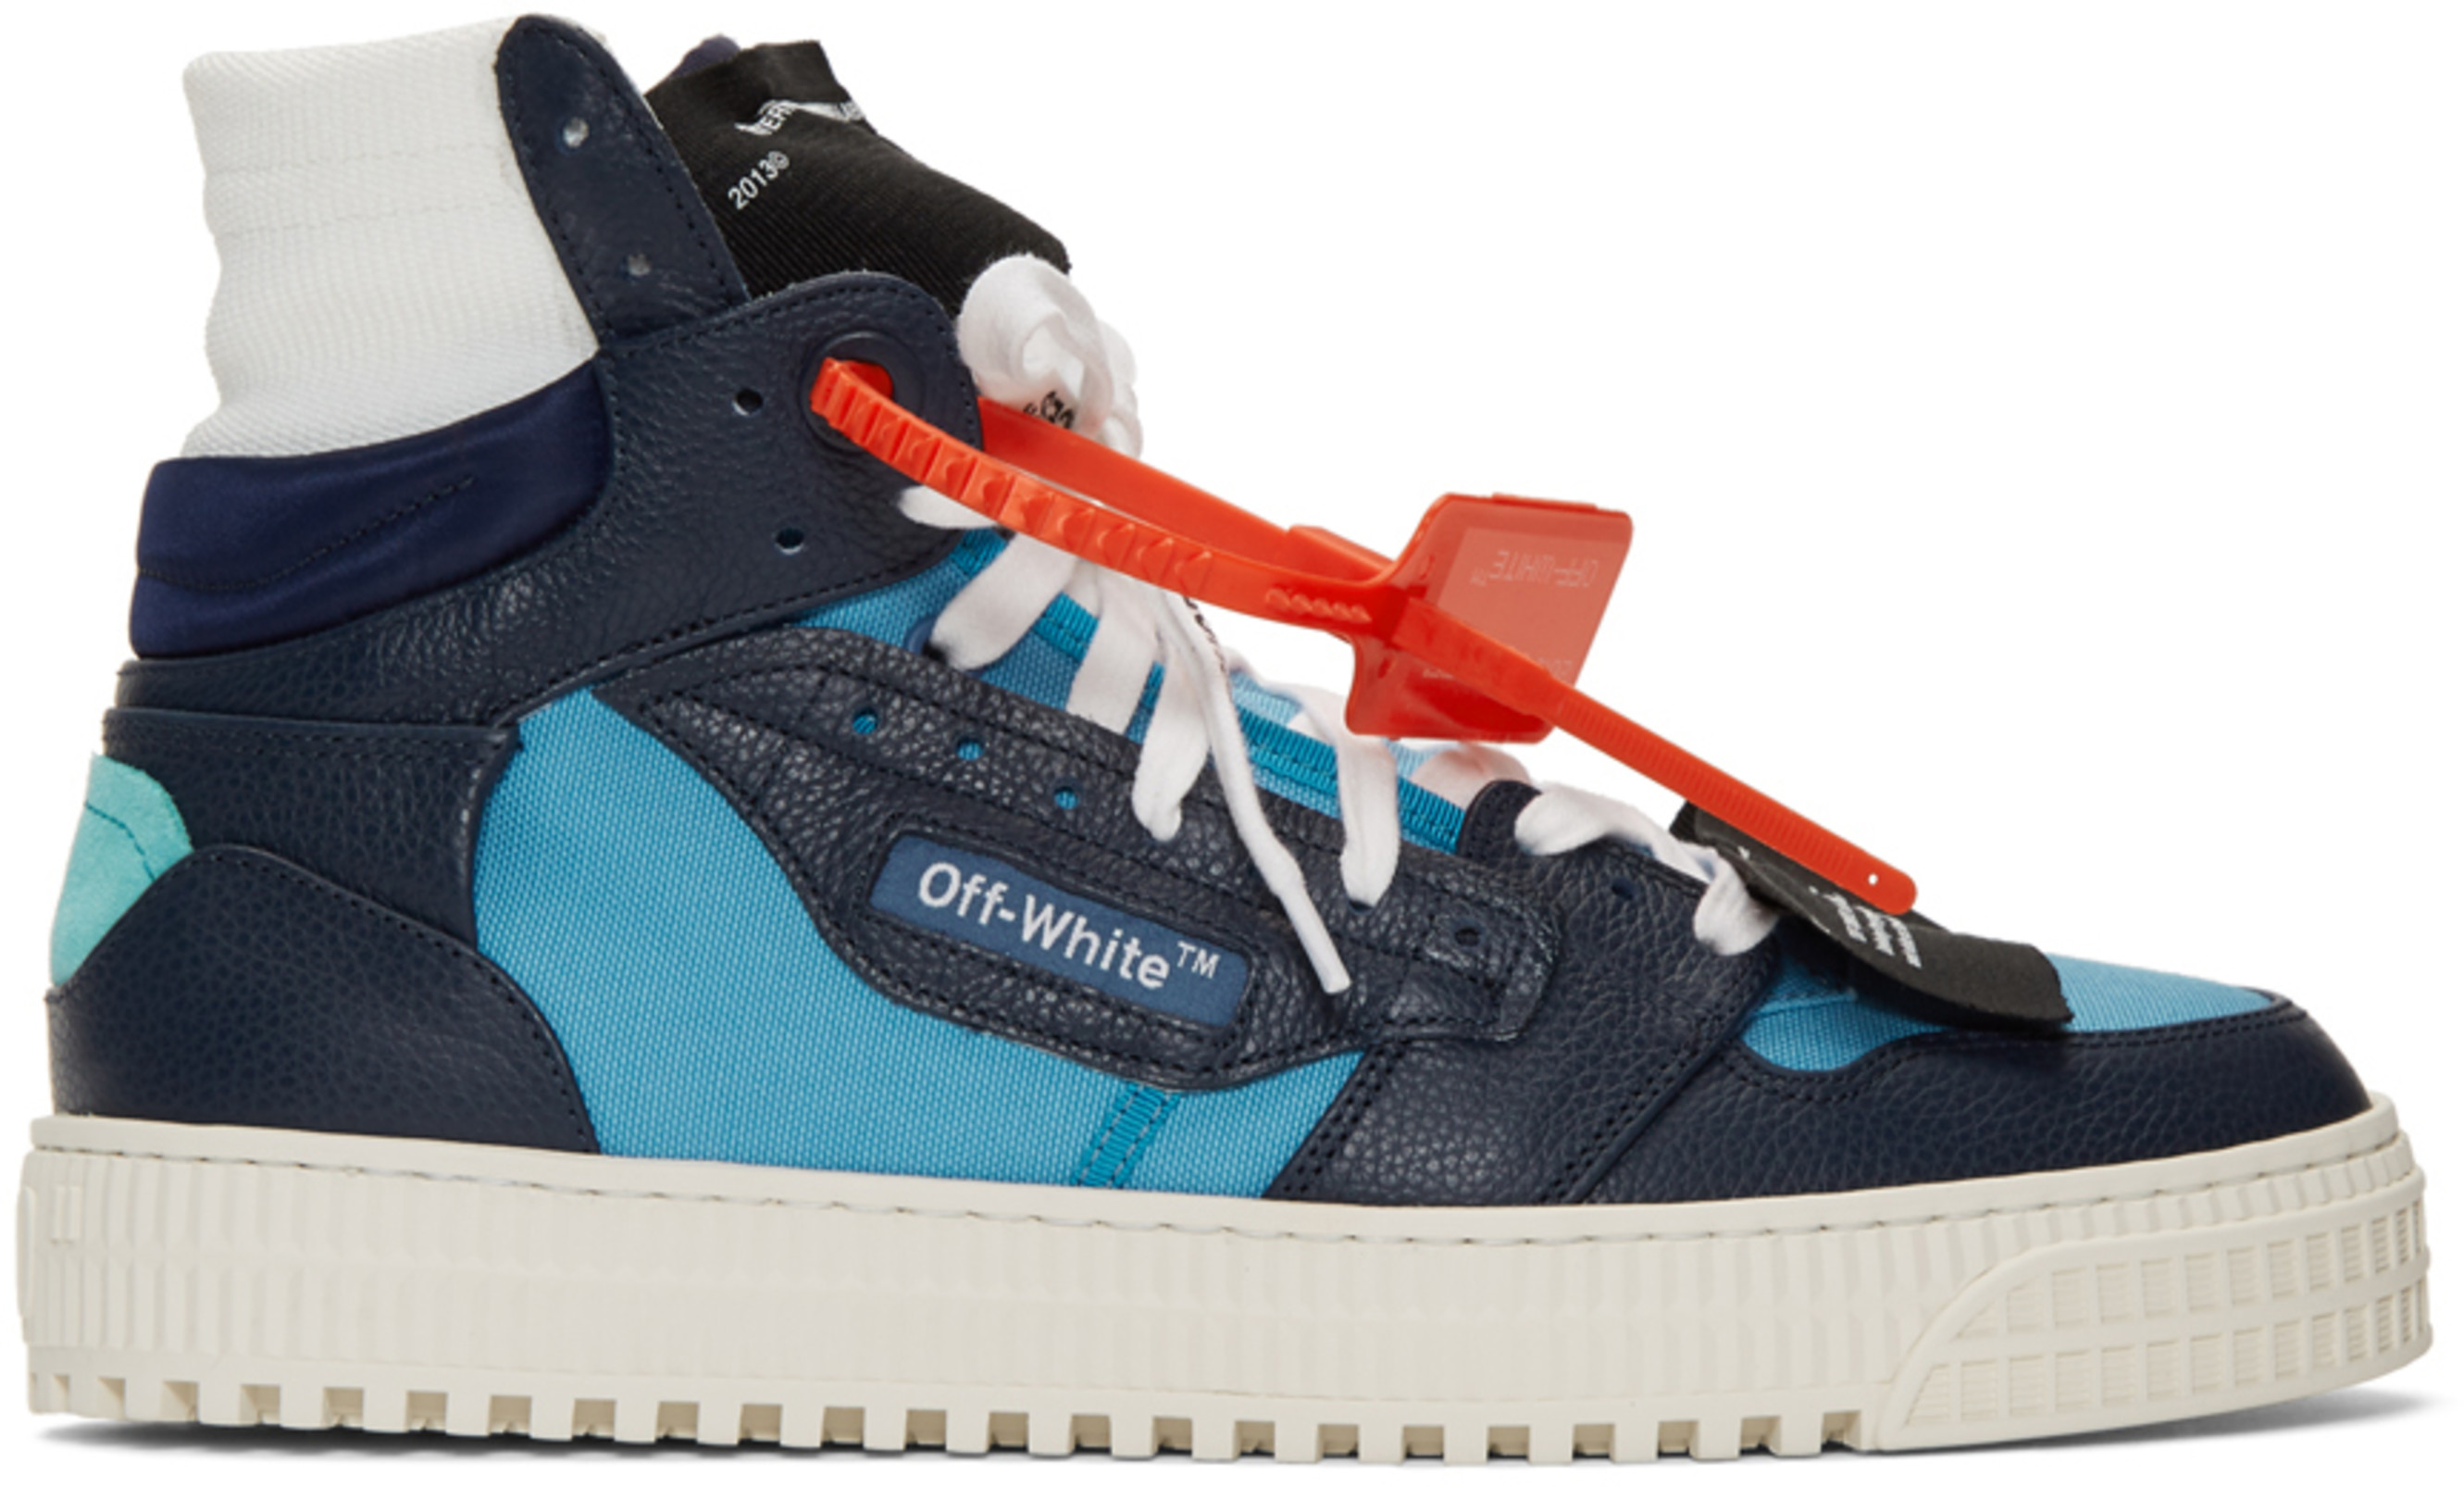 944e9508eb3e Off-white for Men SS19 Collection